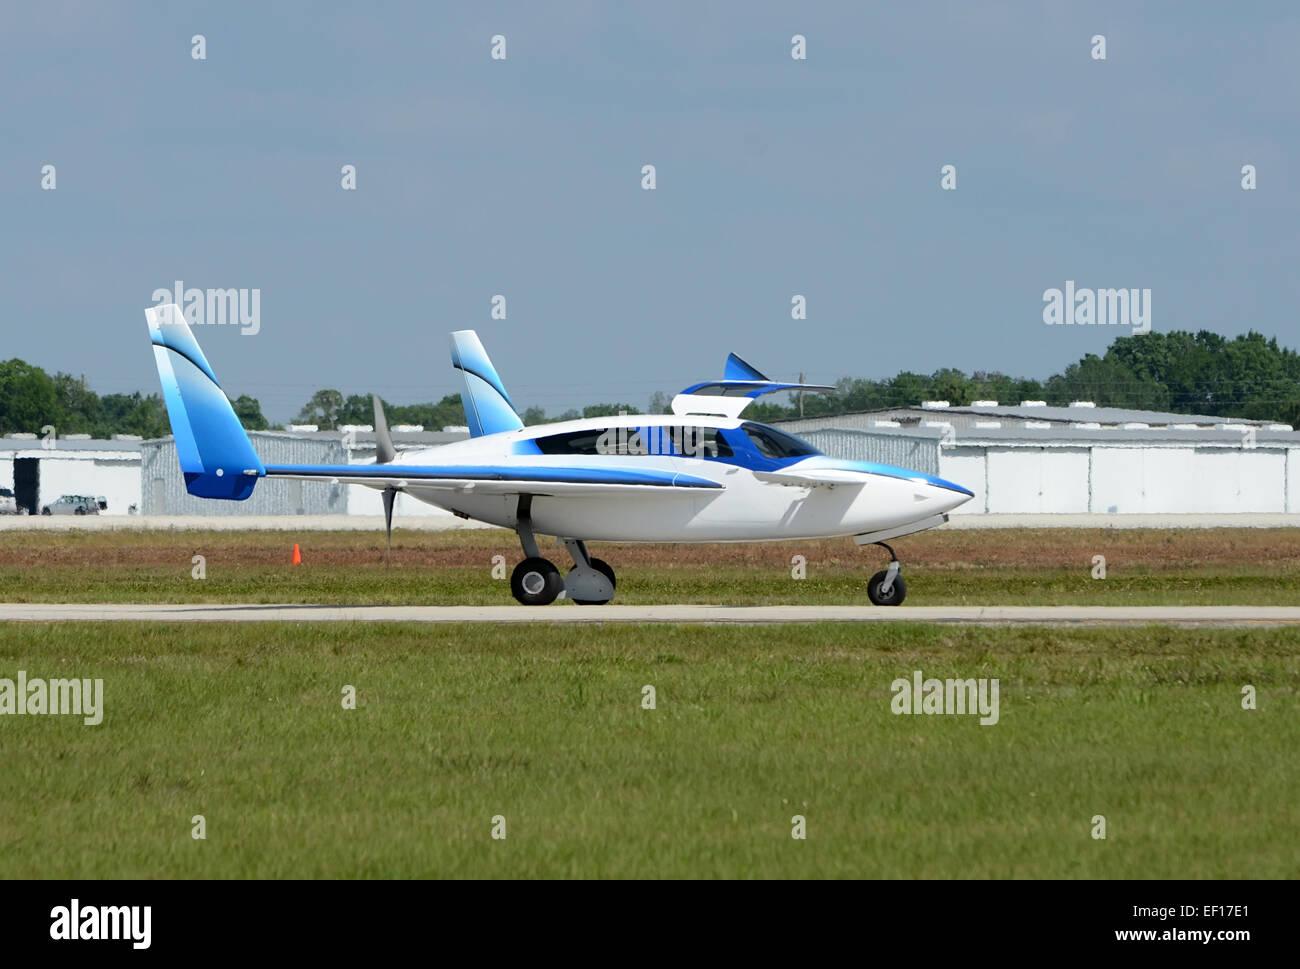 Light private experimental airplane taxiing for takeoff - Stock Image